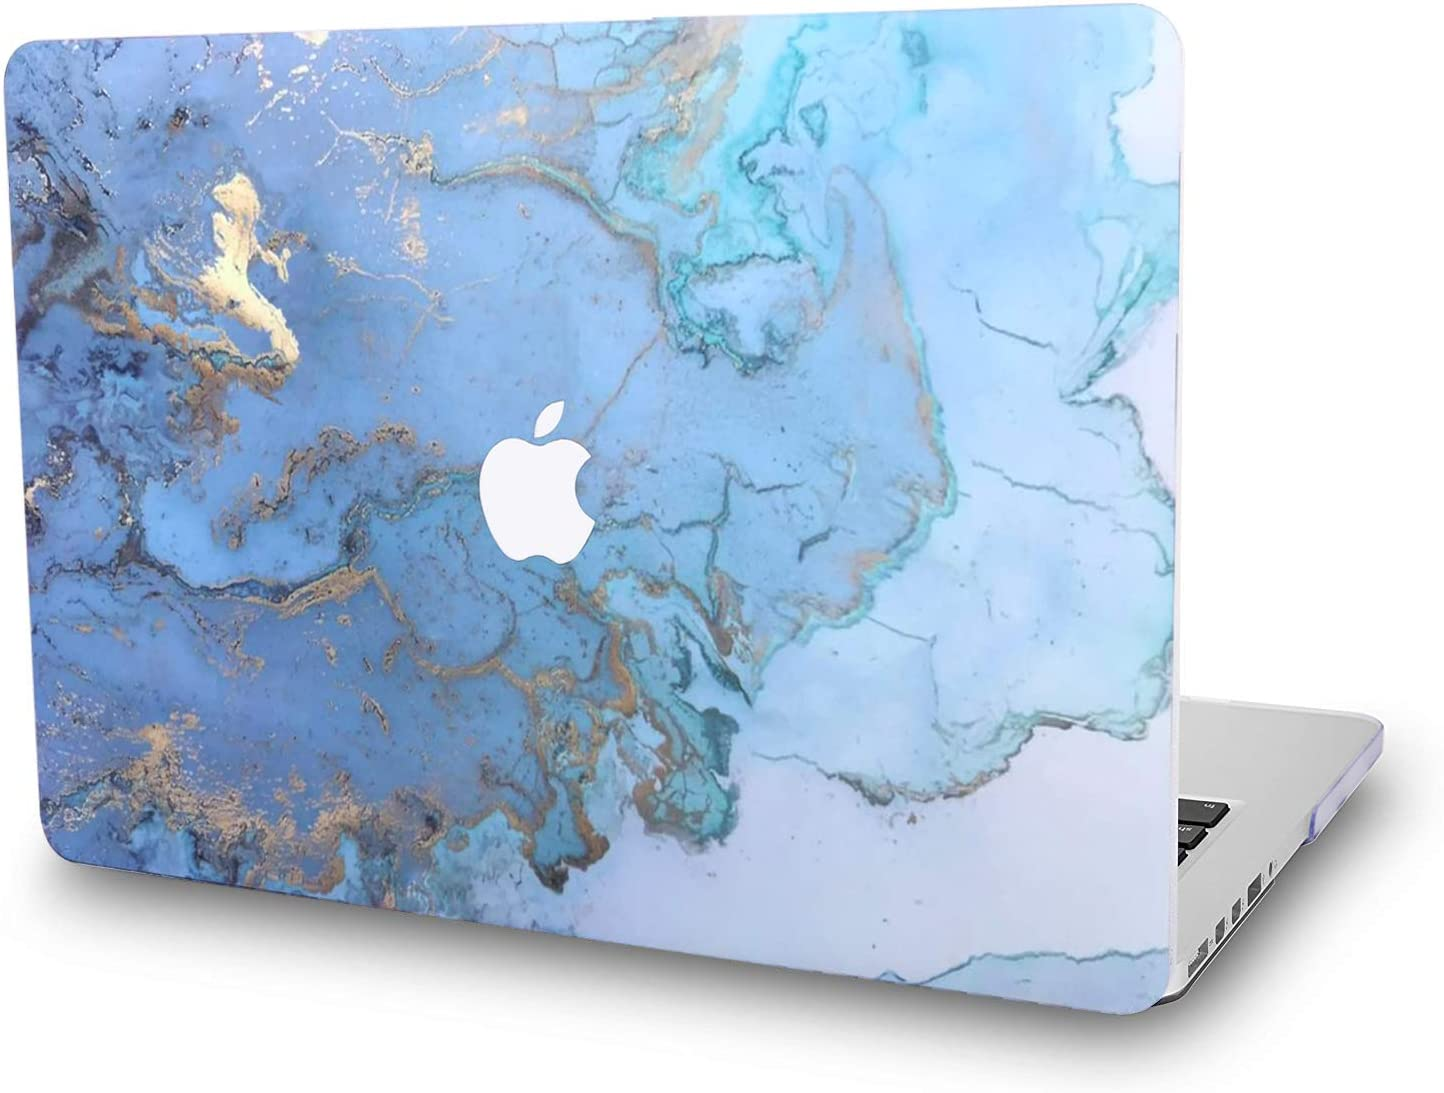 """Case for MacBook Retina Pro 13 A1502/A1425 - L2W Matte Plastic Frosted Rubber Coated Protective Shell Cover Compatible with Apple MacBook Pro 13"""" with Retina Display - Marble Pattern DL 41"""